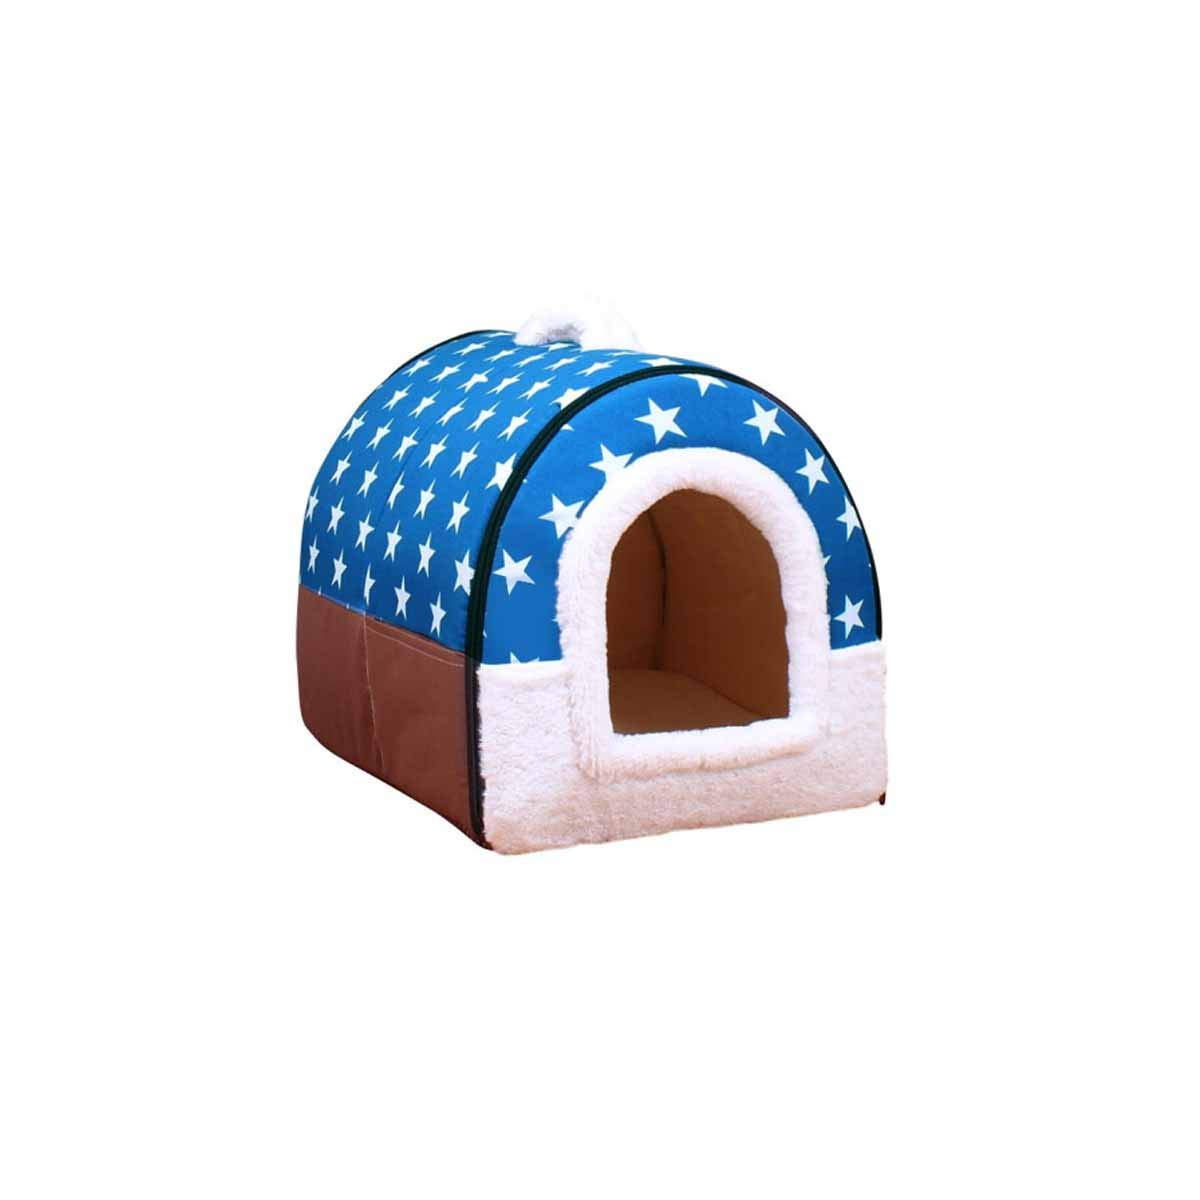 Kennel, Cat Litter, Warm Winter, Thick Large, Teddy, Small Dog, Medium Dog, Pet Dog, Cat, Dog Mat, Dog House, Removable, bluee Star, M No. 45  35  35cm Recommended to Use Within 11 Kg